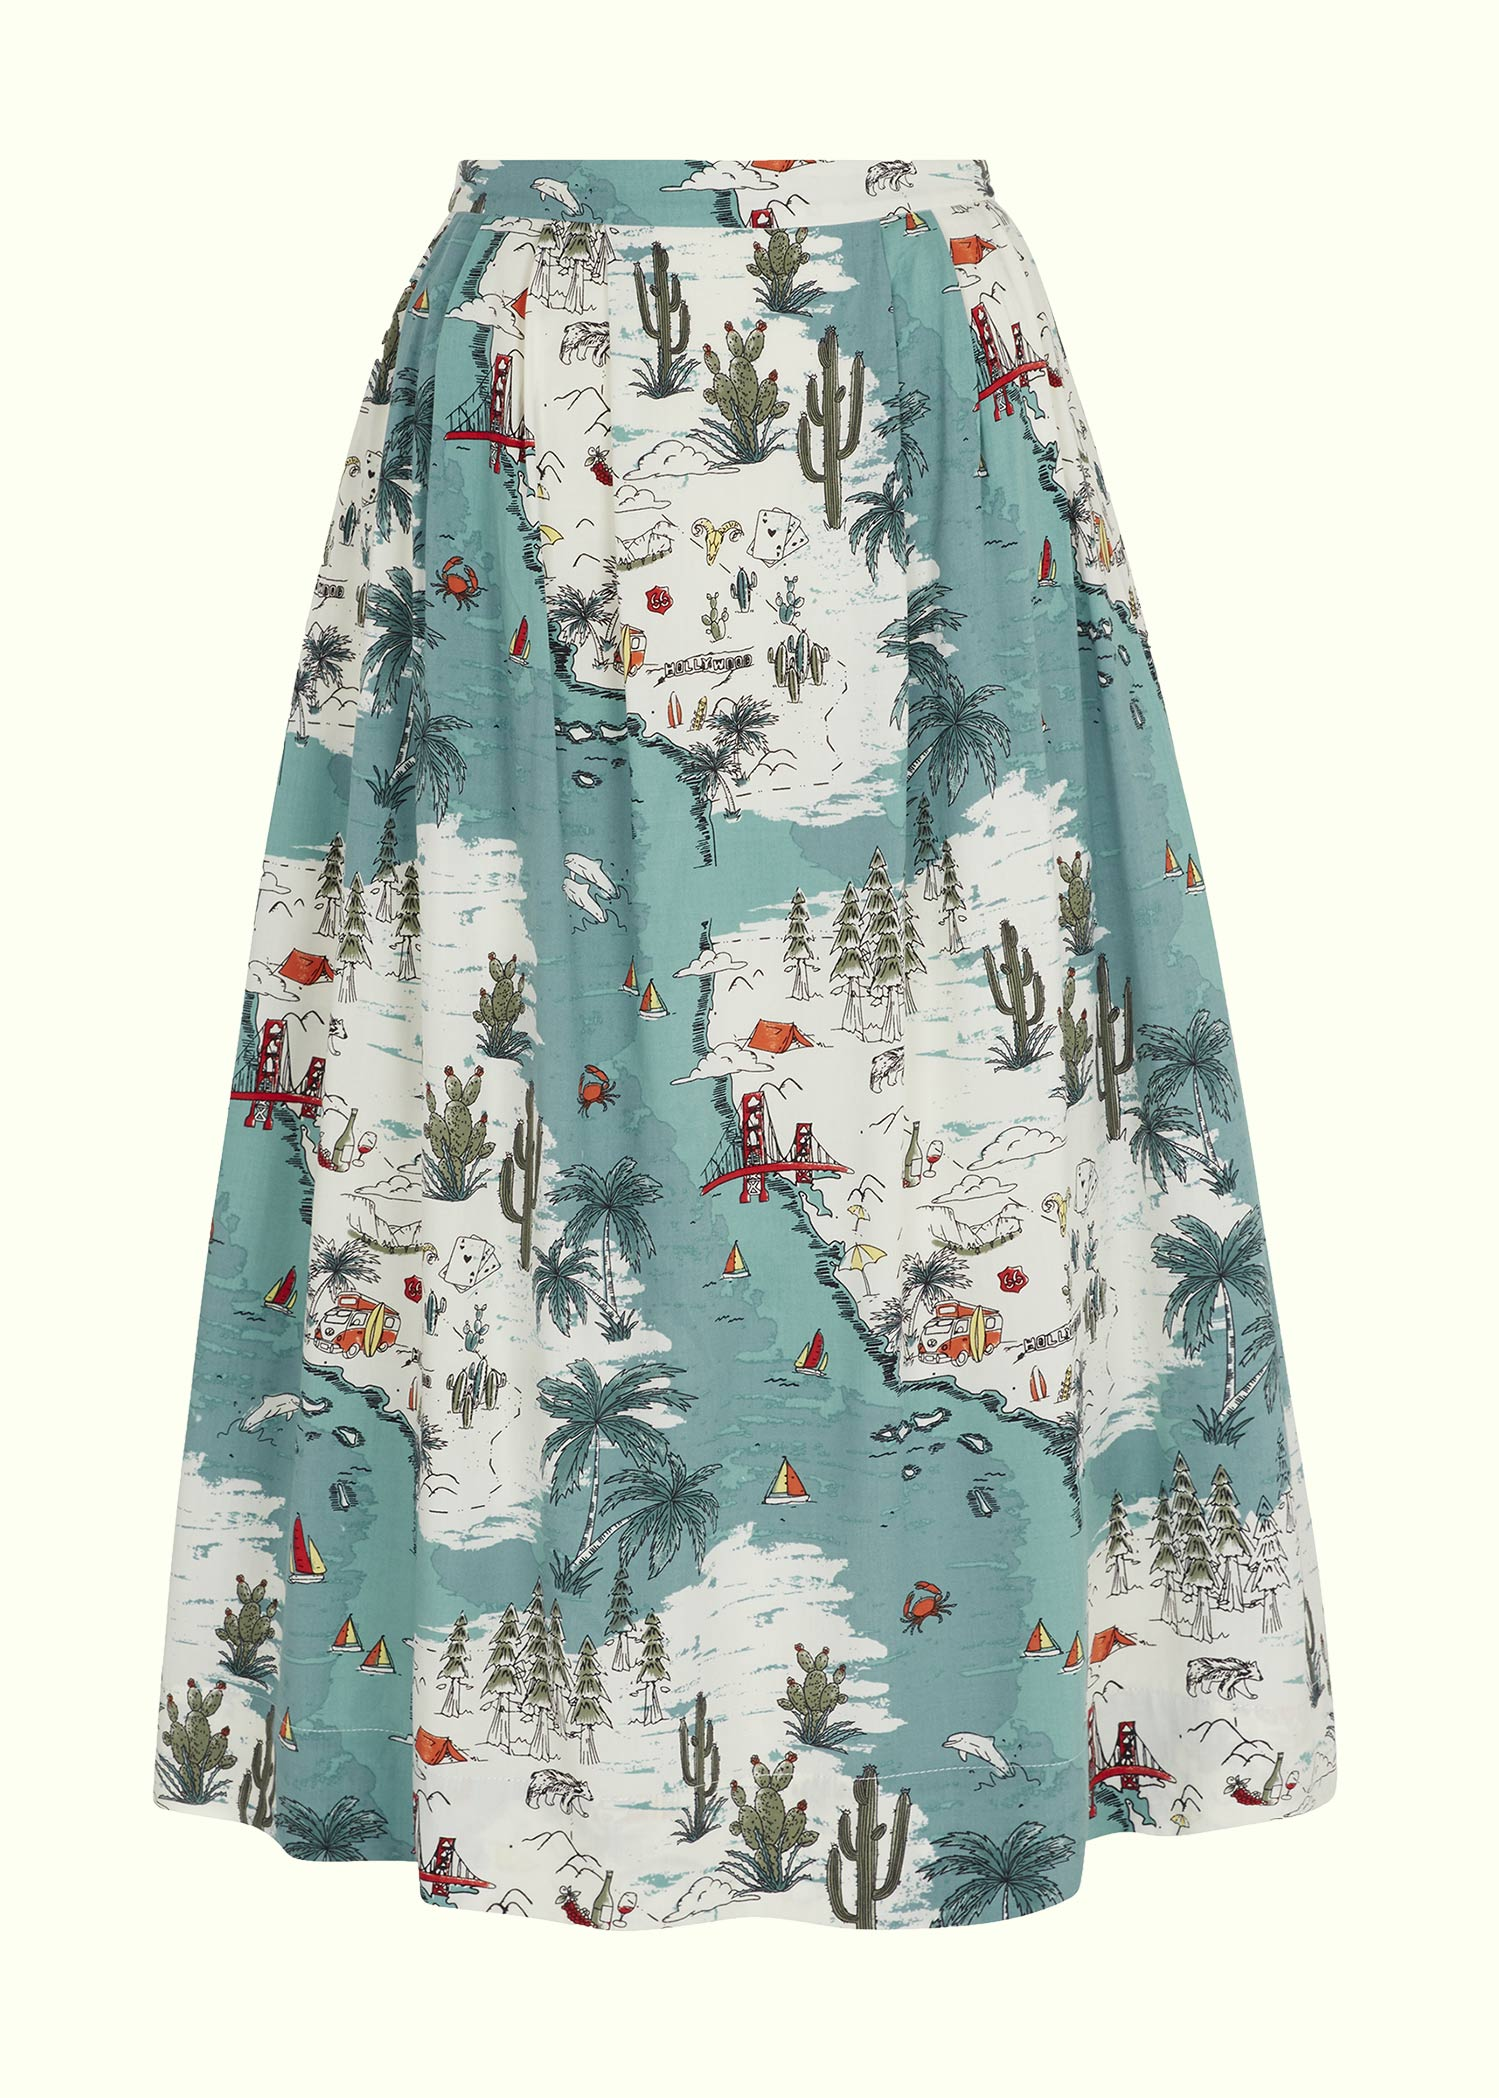 1950s style swing summer skirt in california print by emily and fin